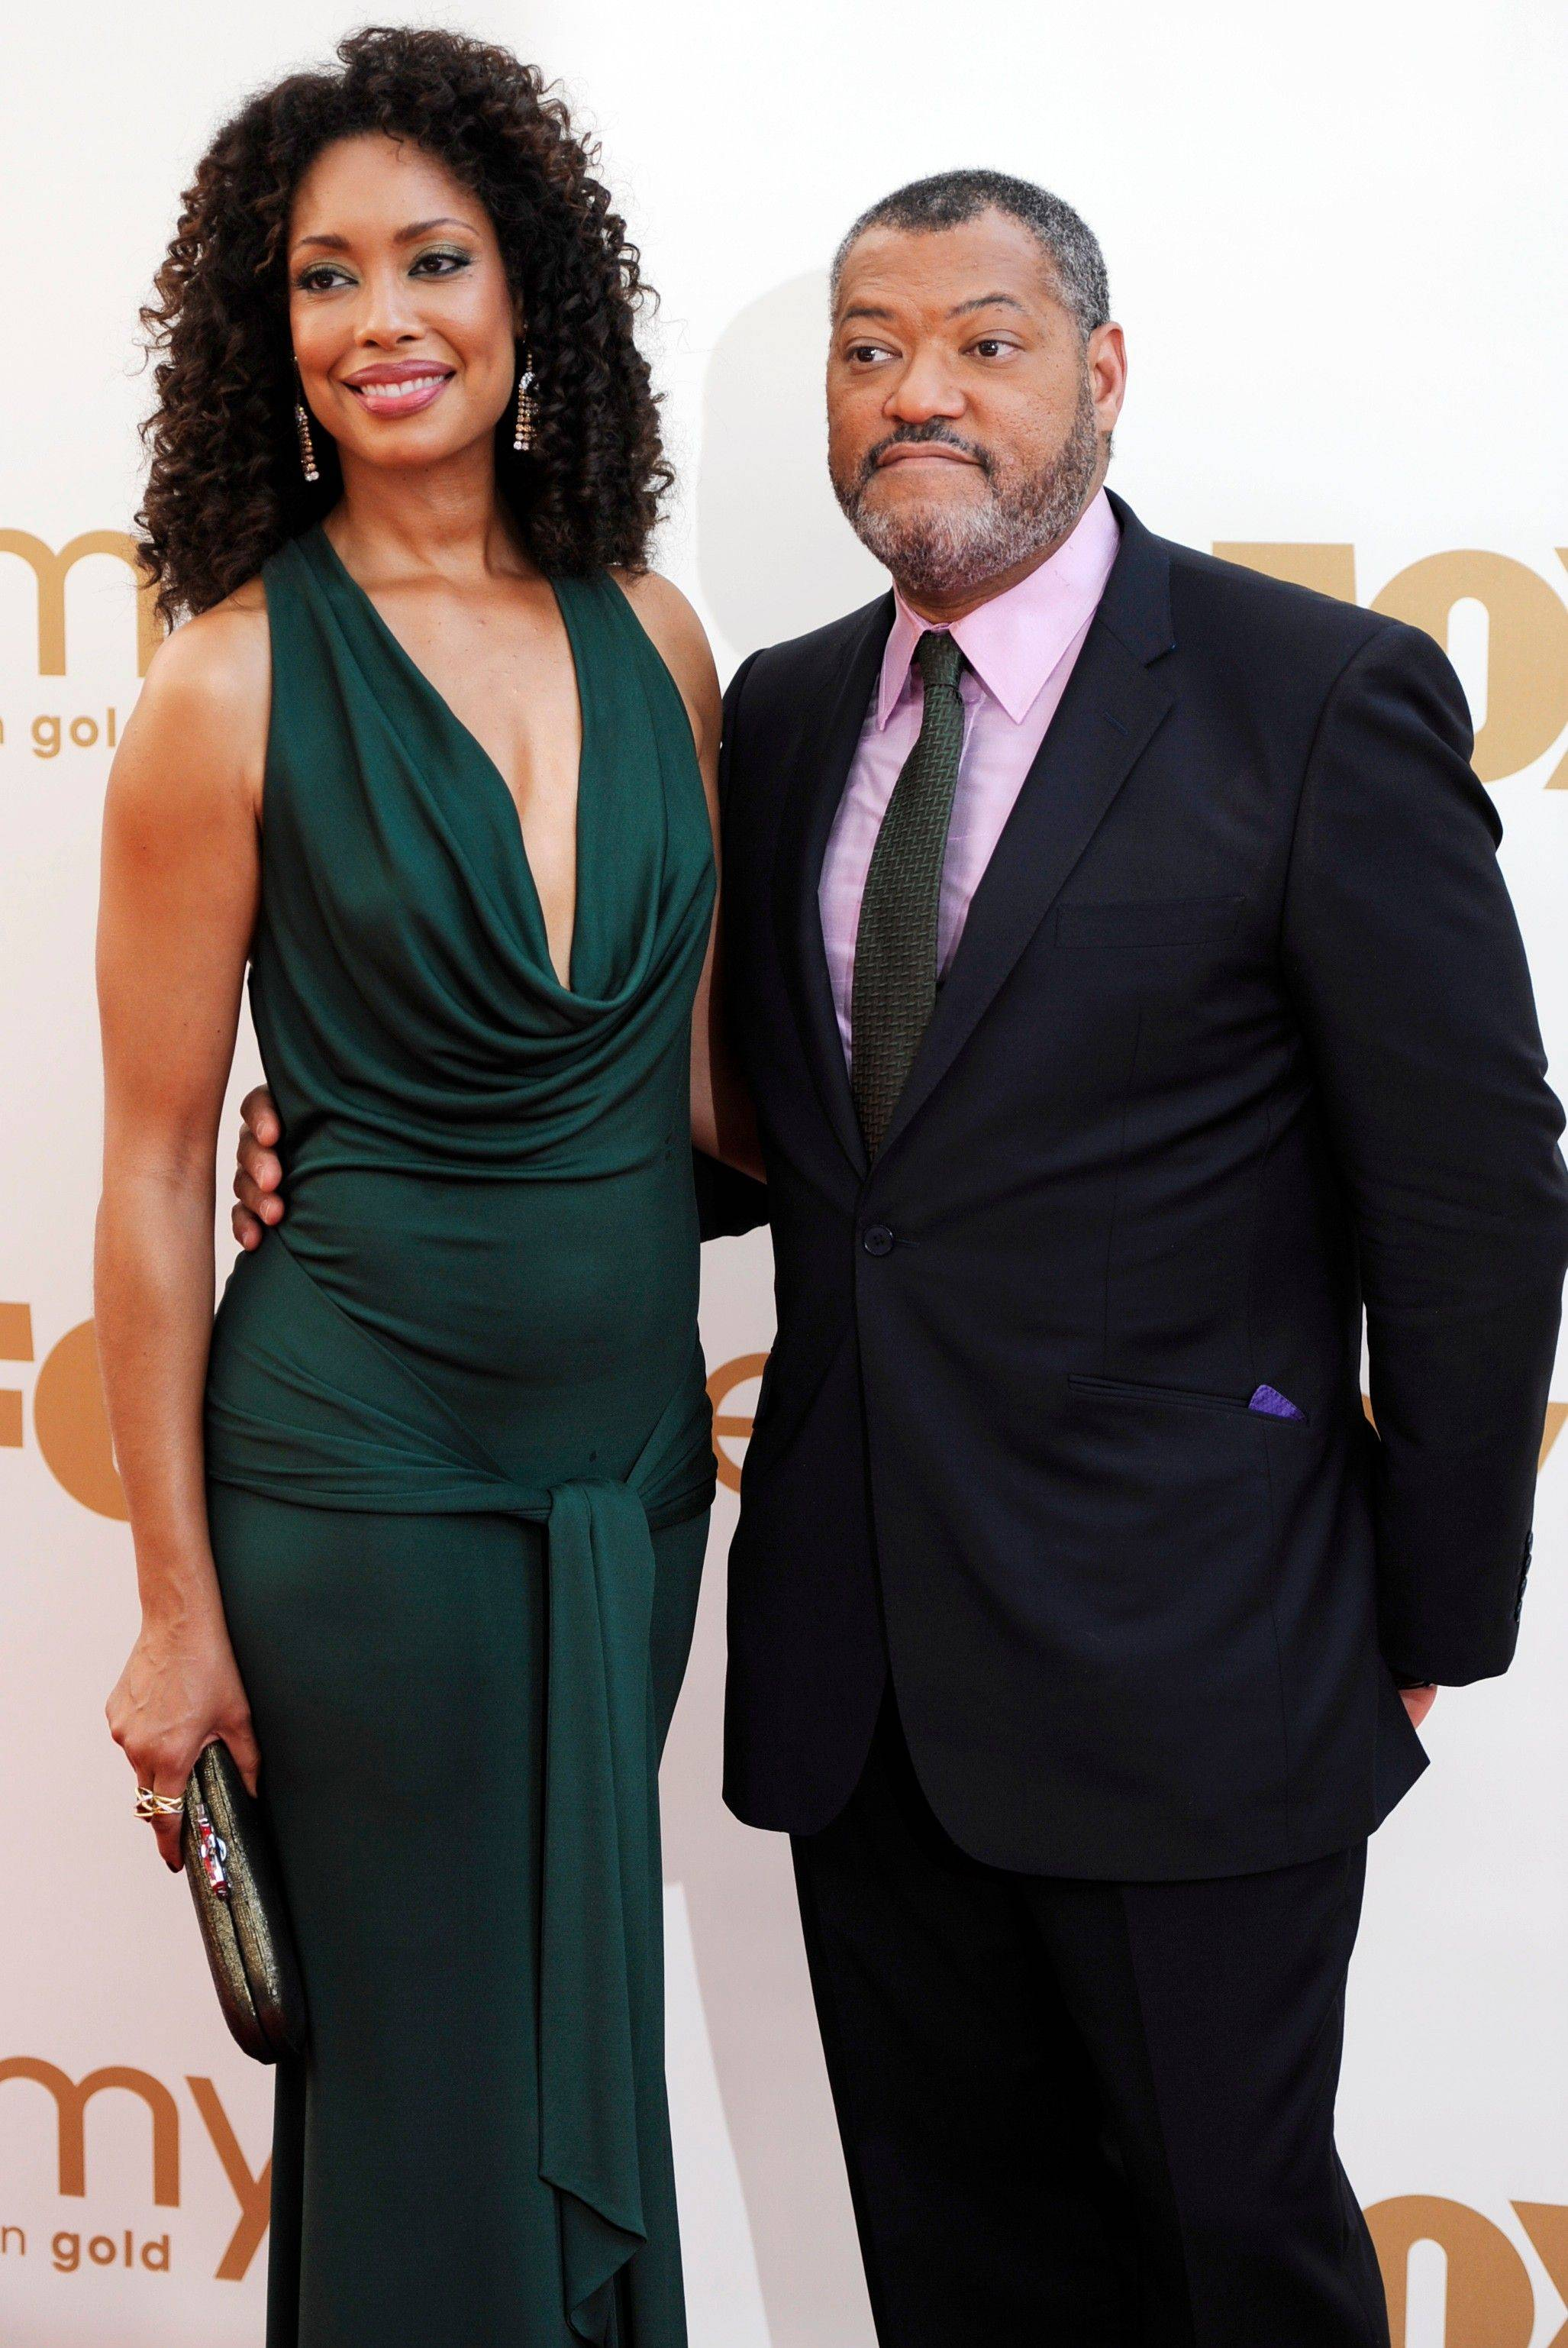 Actress Gina Torres and actor Laurence Fishburne keep each other close on the red carpet.